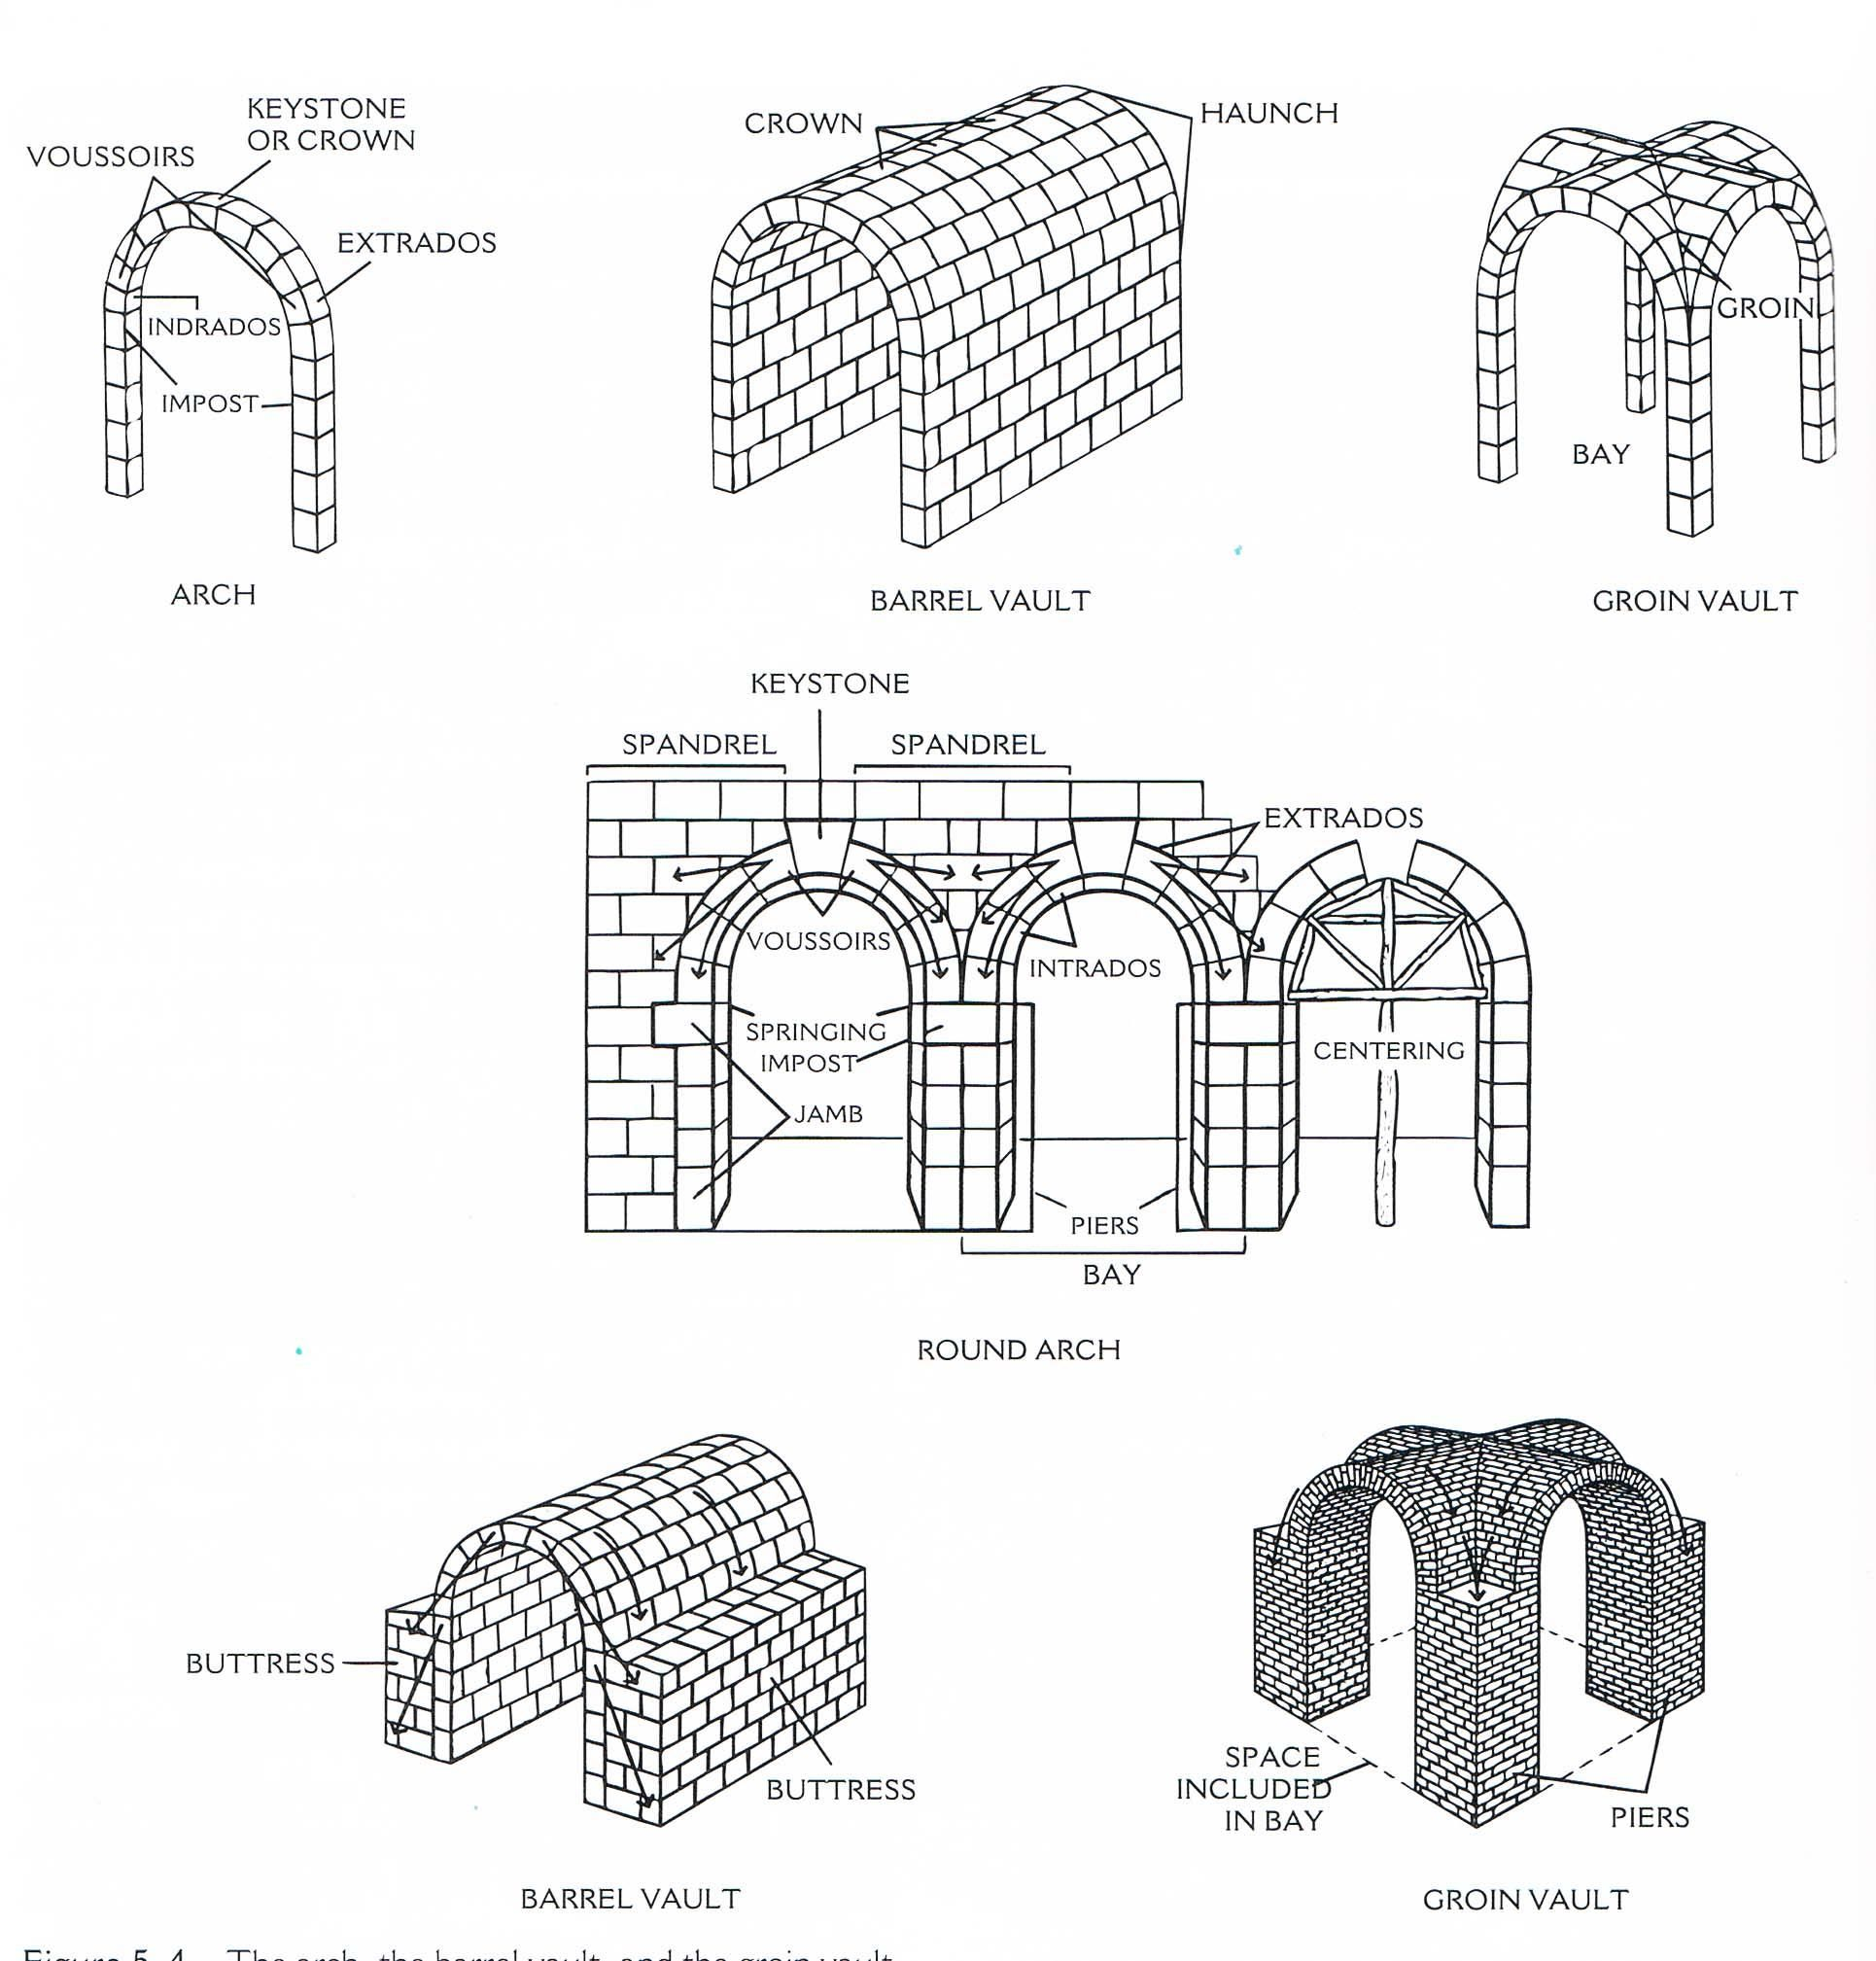 Arches Tunnel Or Barrel Vault Dome And Drum Keystone